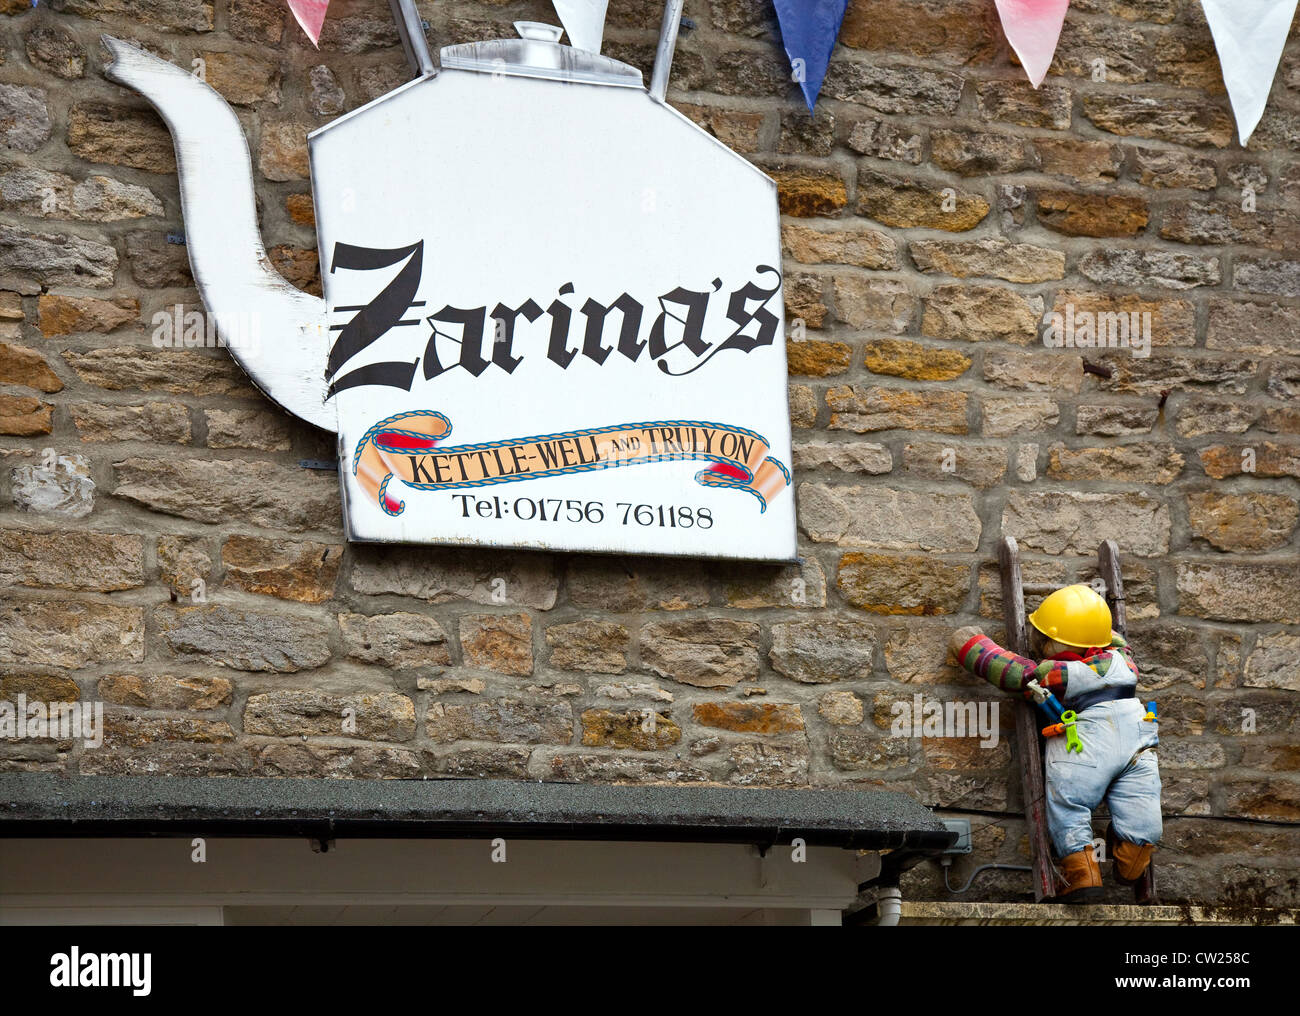 Kettlewell, Zarinas, Tea Shop Sign, in the Village of Kettlewell, Wharfdale,  North Yorkshire Dales, UK - Stock Image